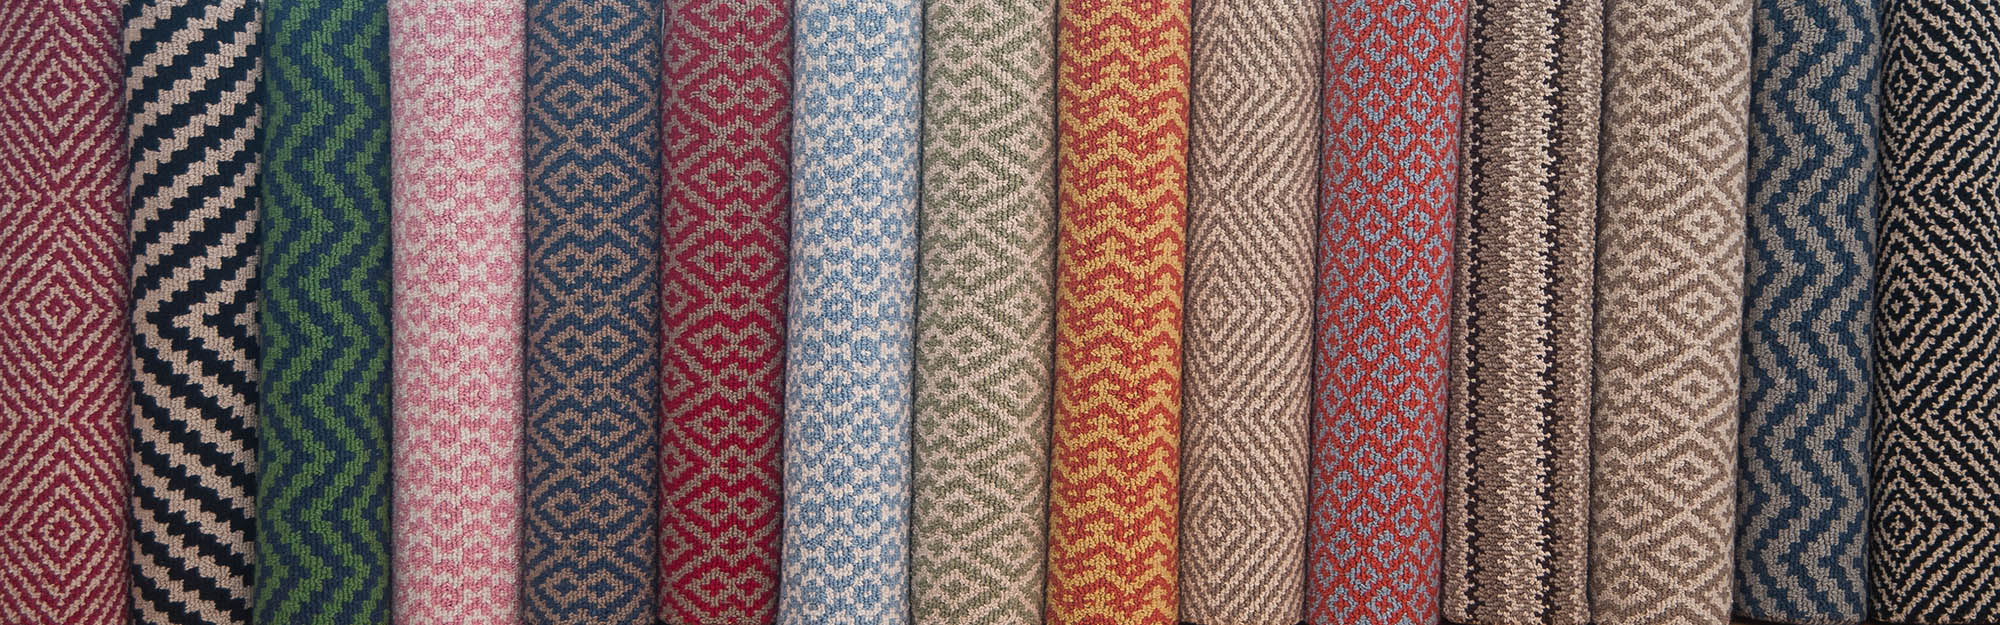 Rolls of our Eco Cotton Loom-Hooked Patterned rugs